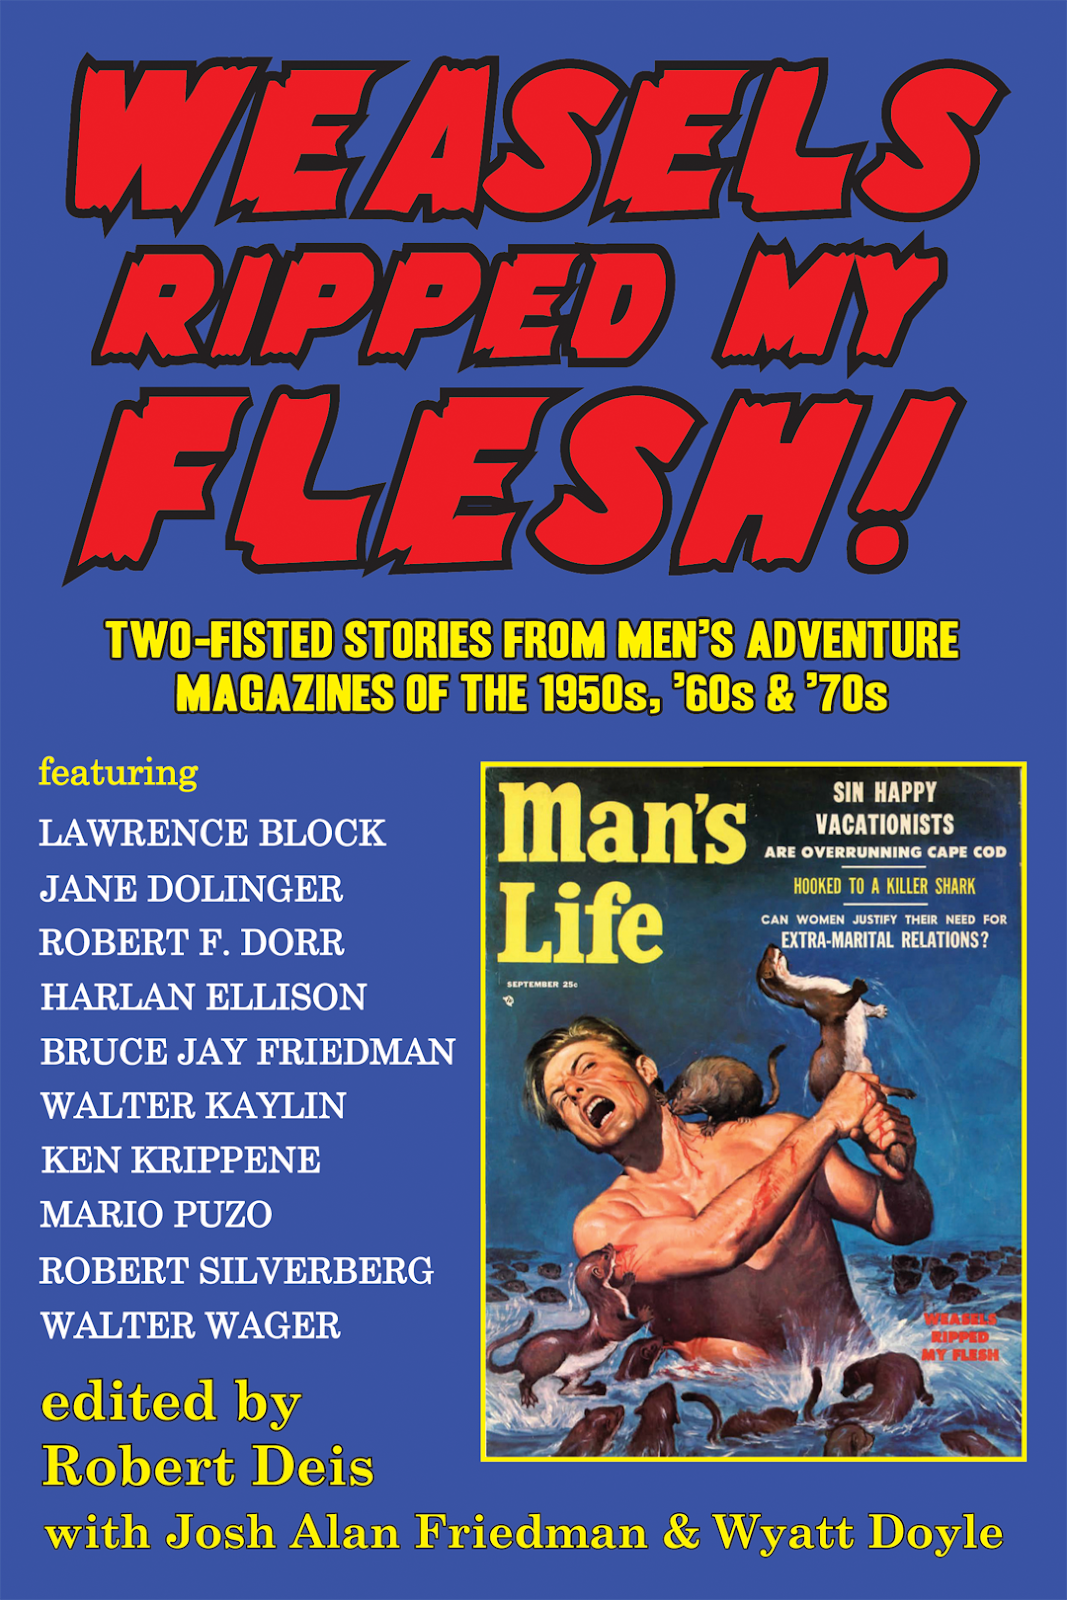 WEASELS RIPPED MY FLESH!